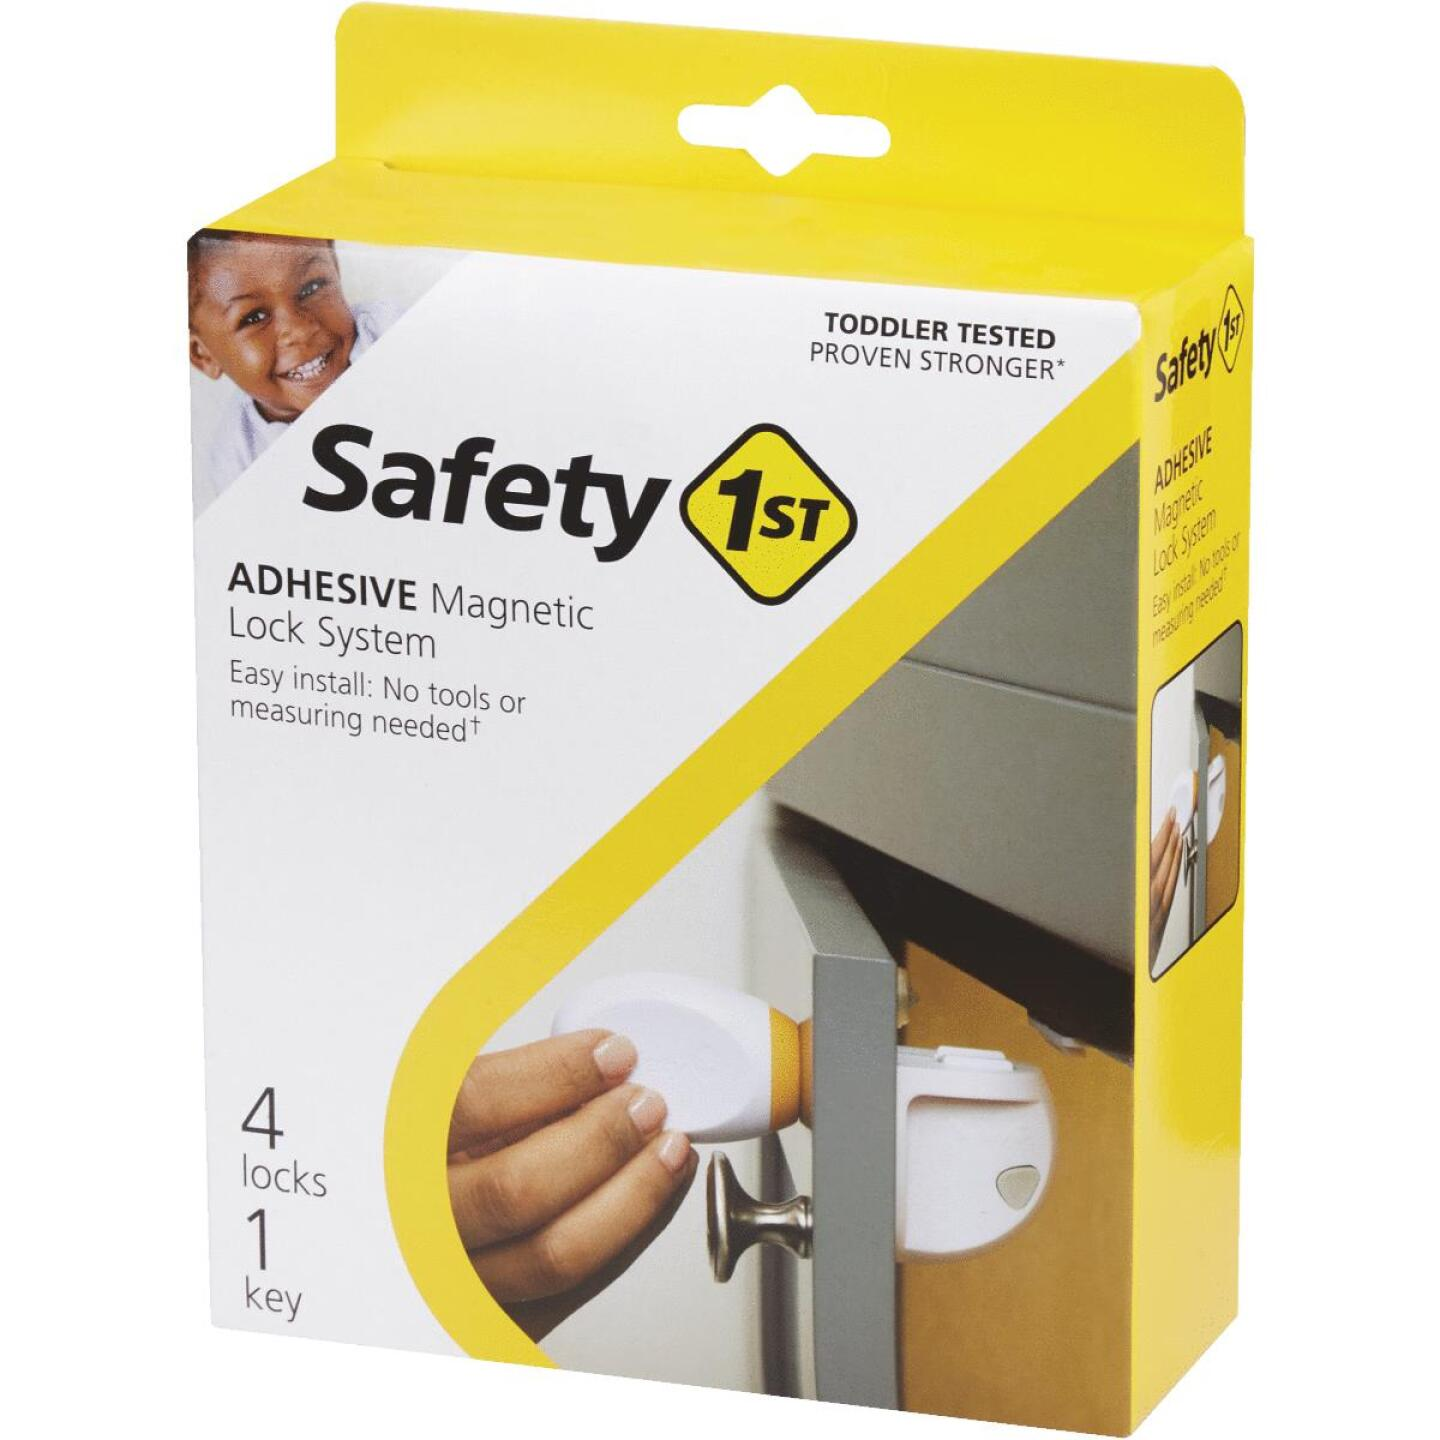 Safety 1st Plastic Adhesive Magnetic Lock System (4-Lock Set) Image 3